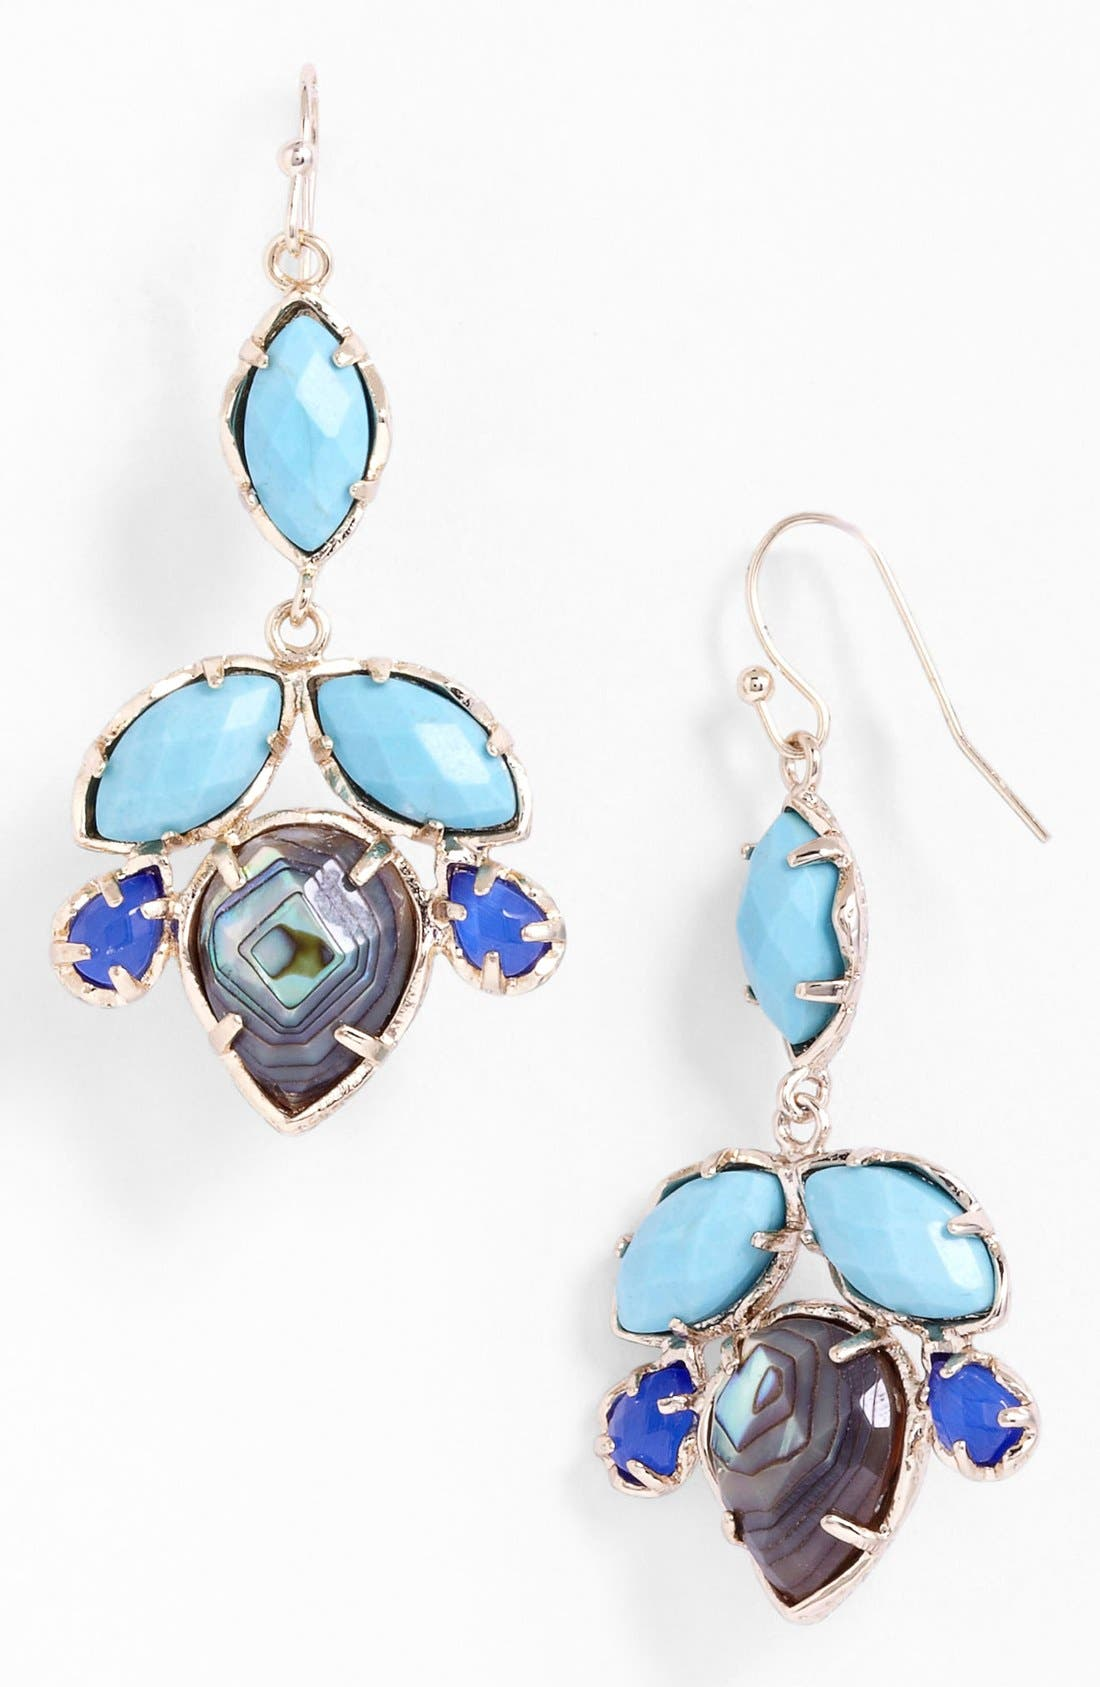 Alternate Image 1 Selected - Kendra Scott 'Vani' Statement Earrings